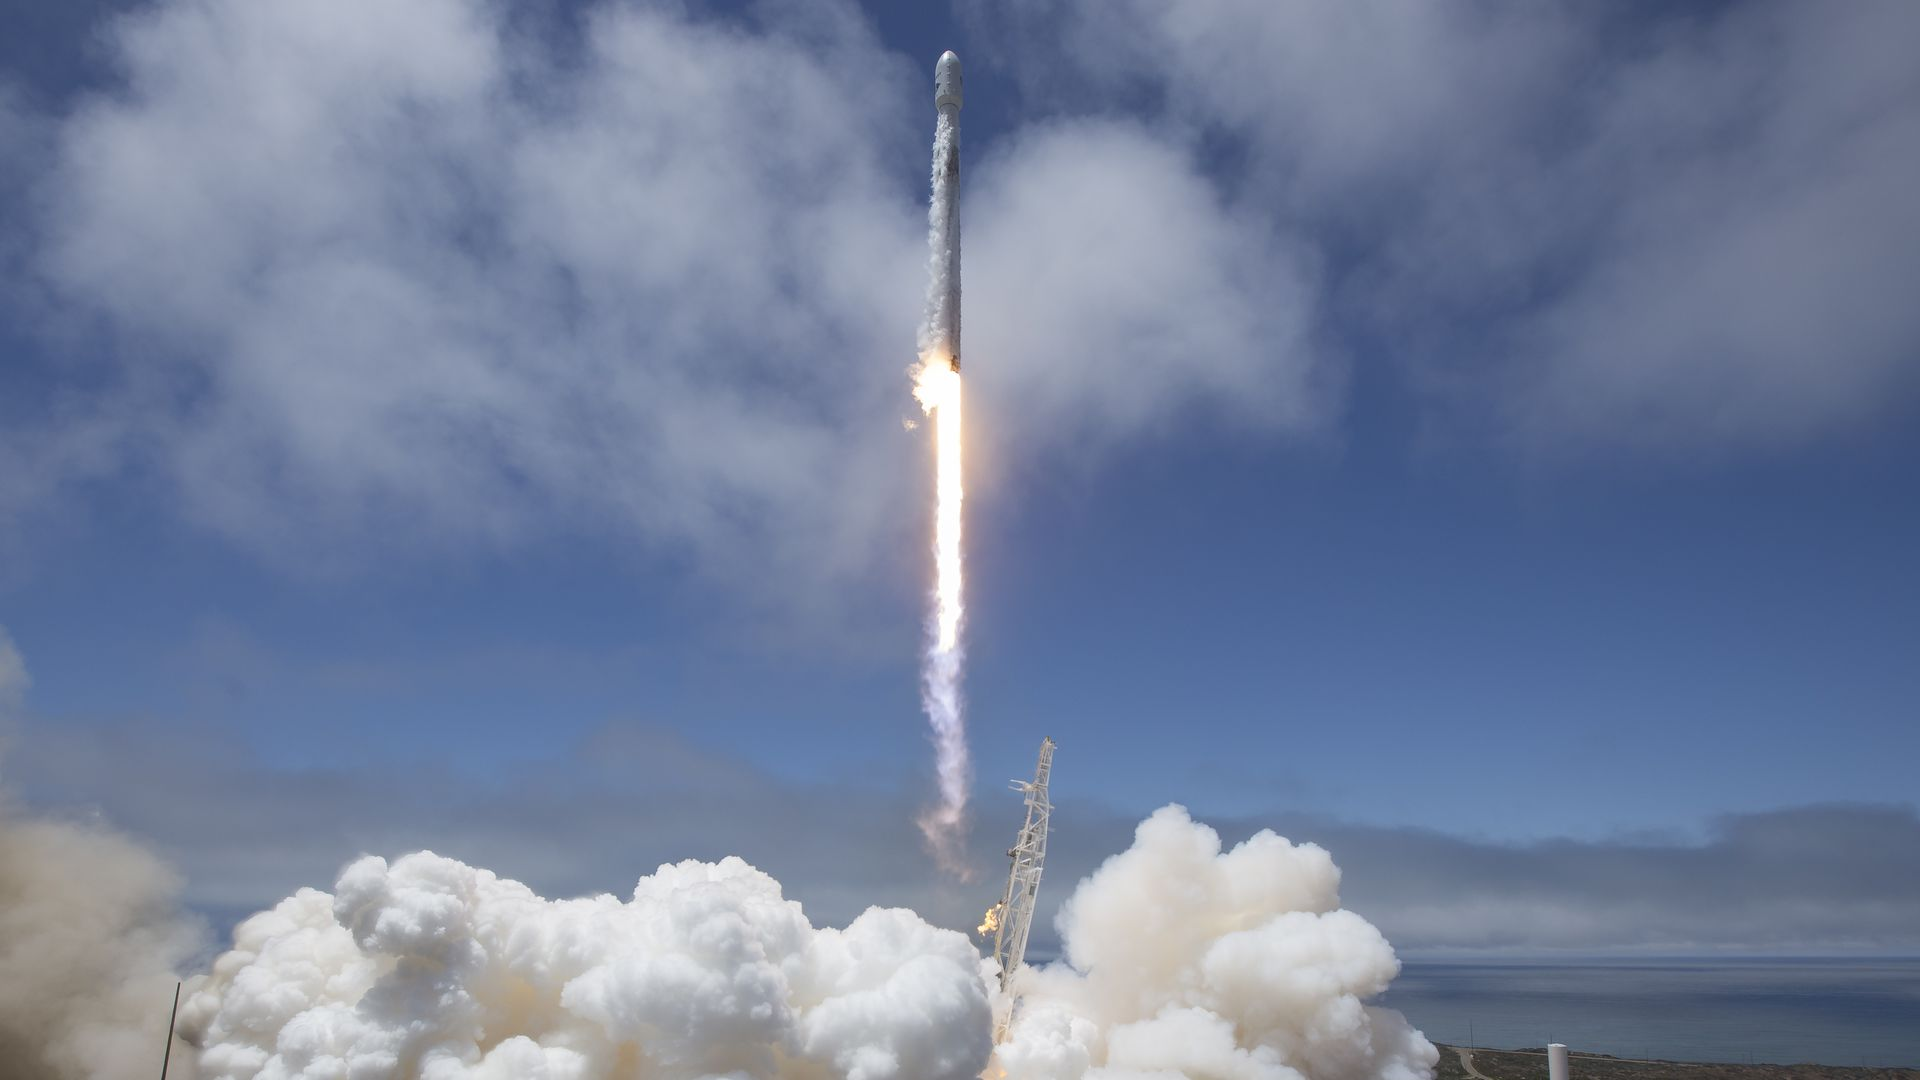 A Falcon 9 rocket taking off